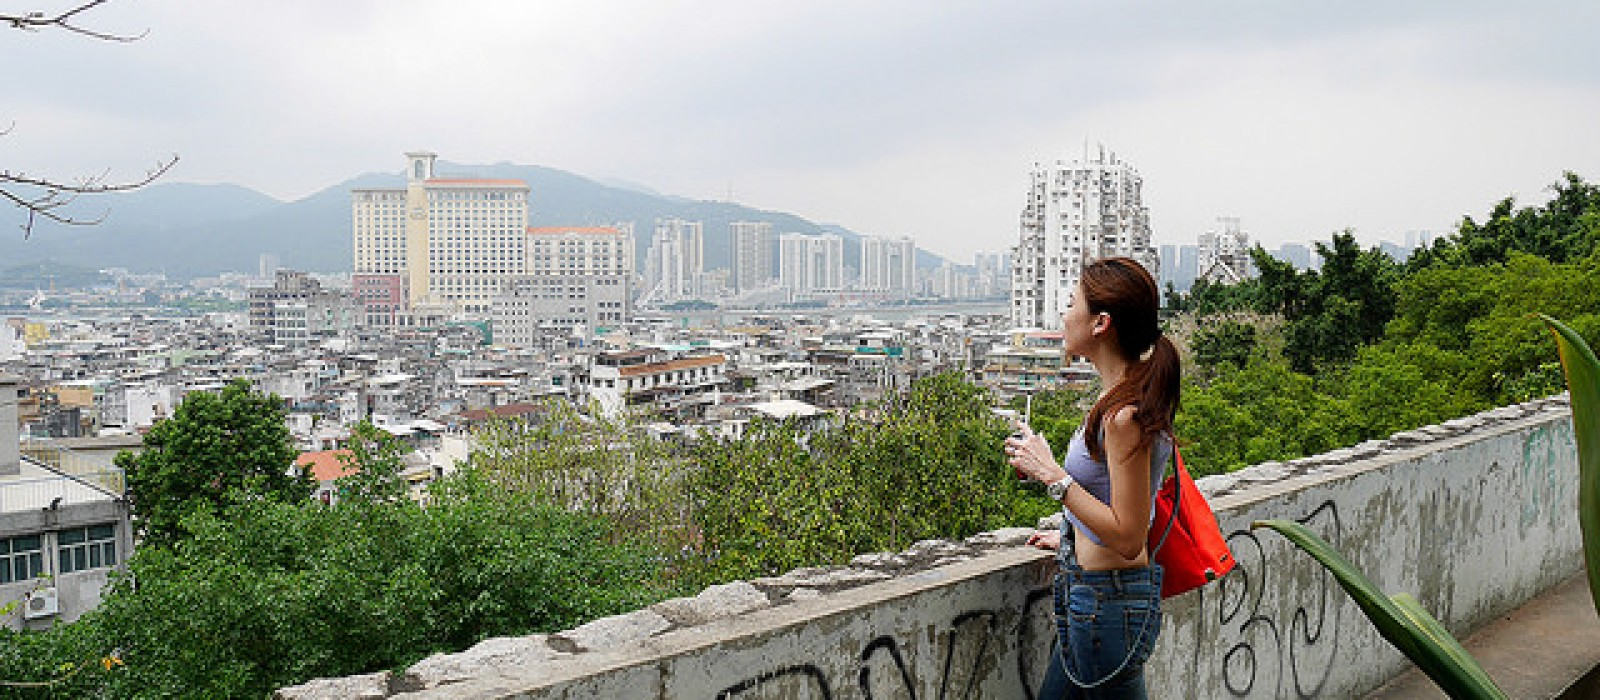 Things To Do in Macau (Part 1)